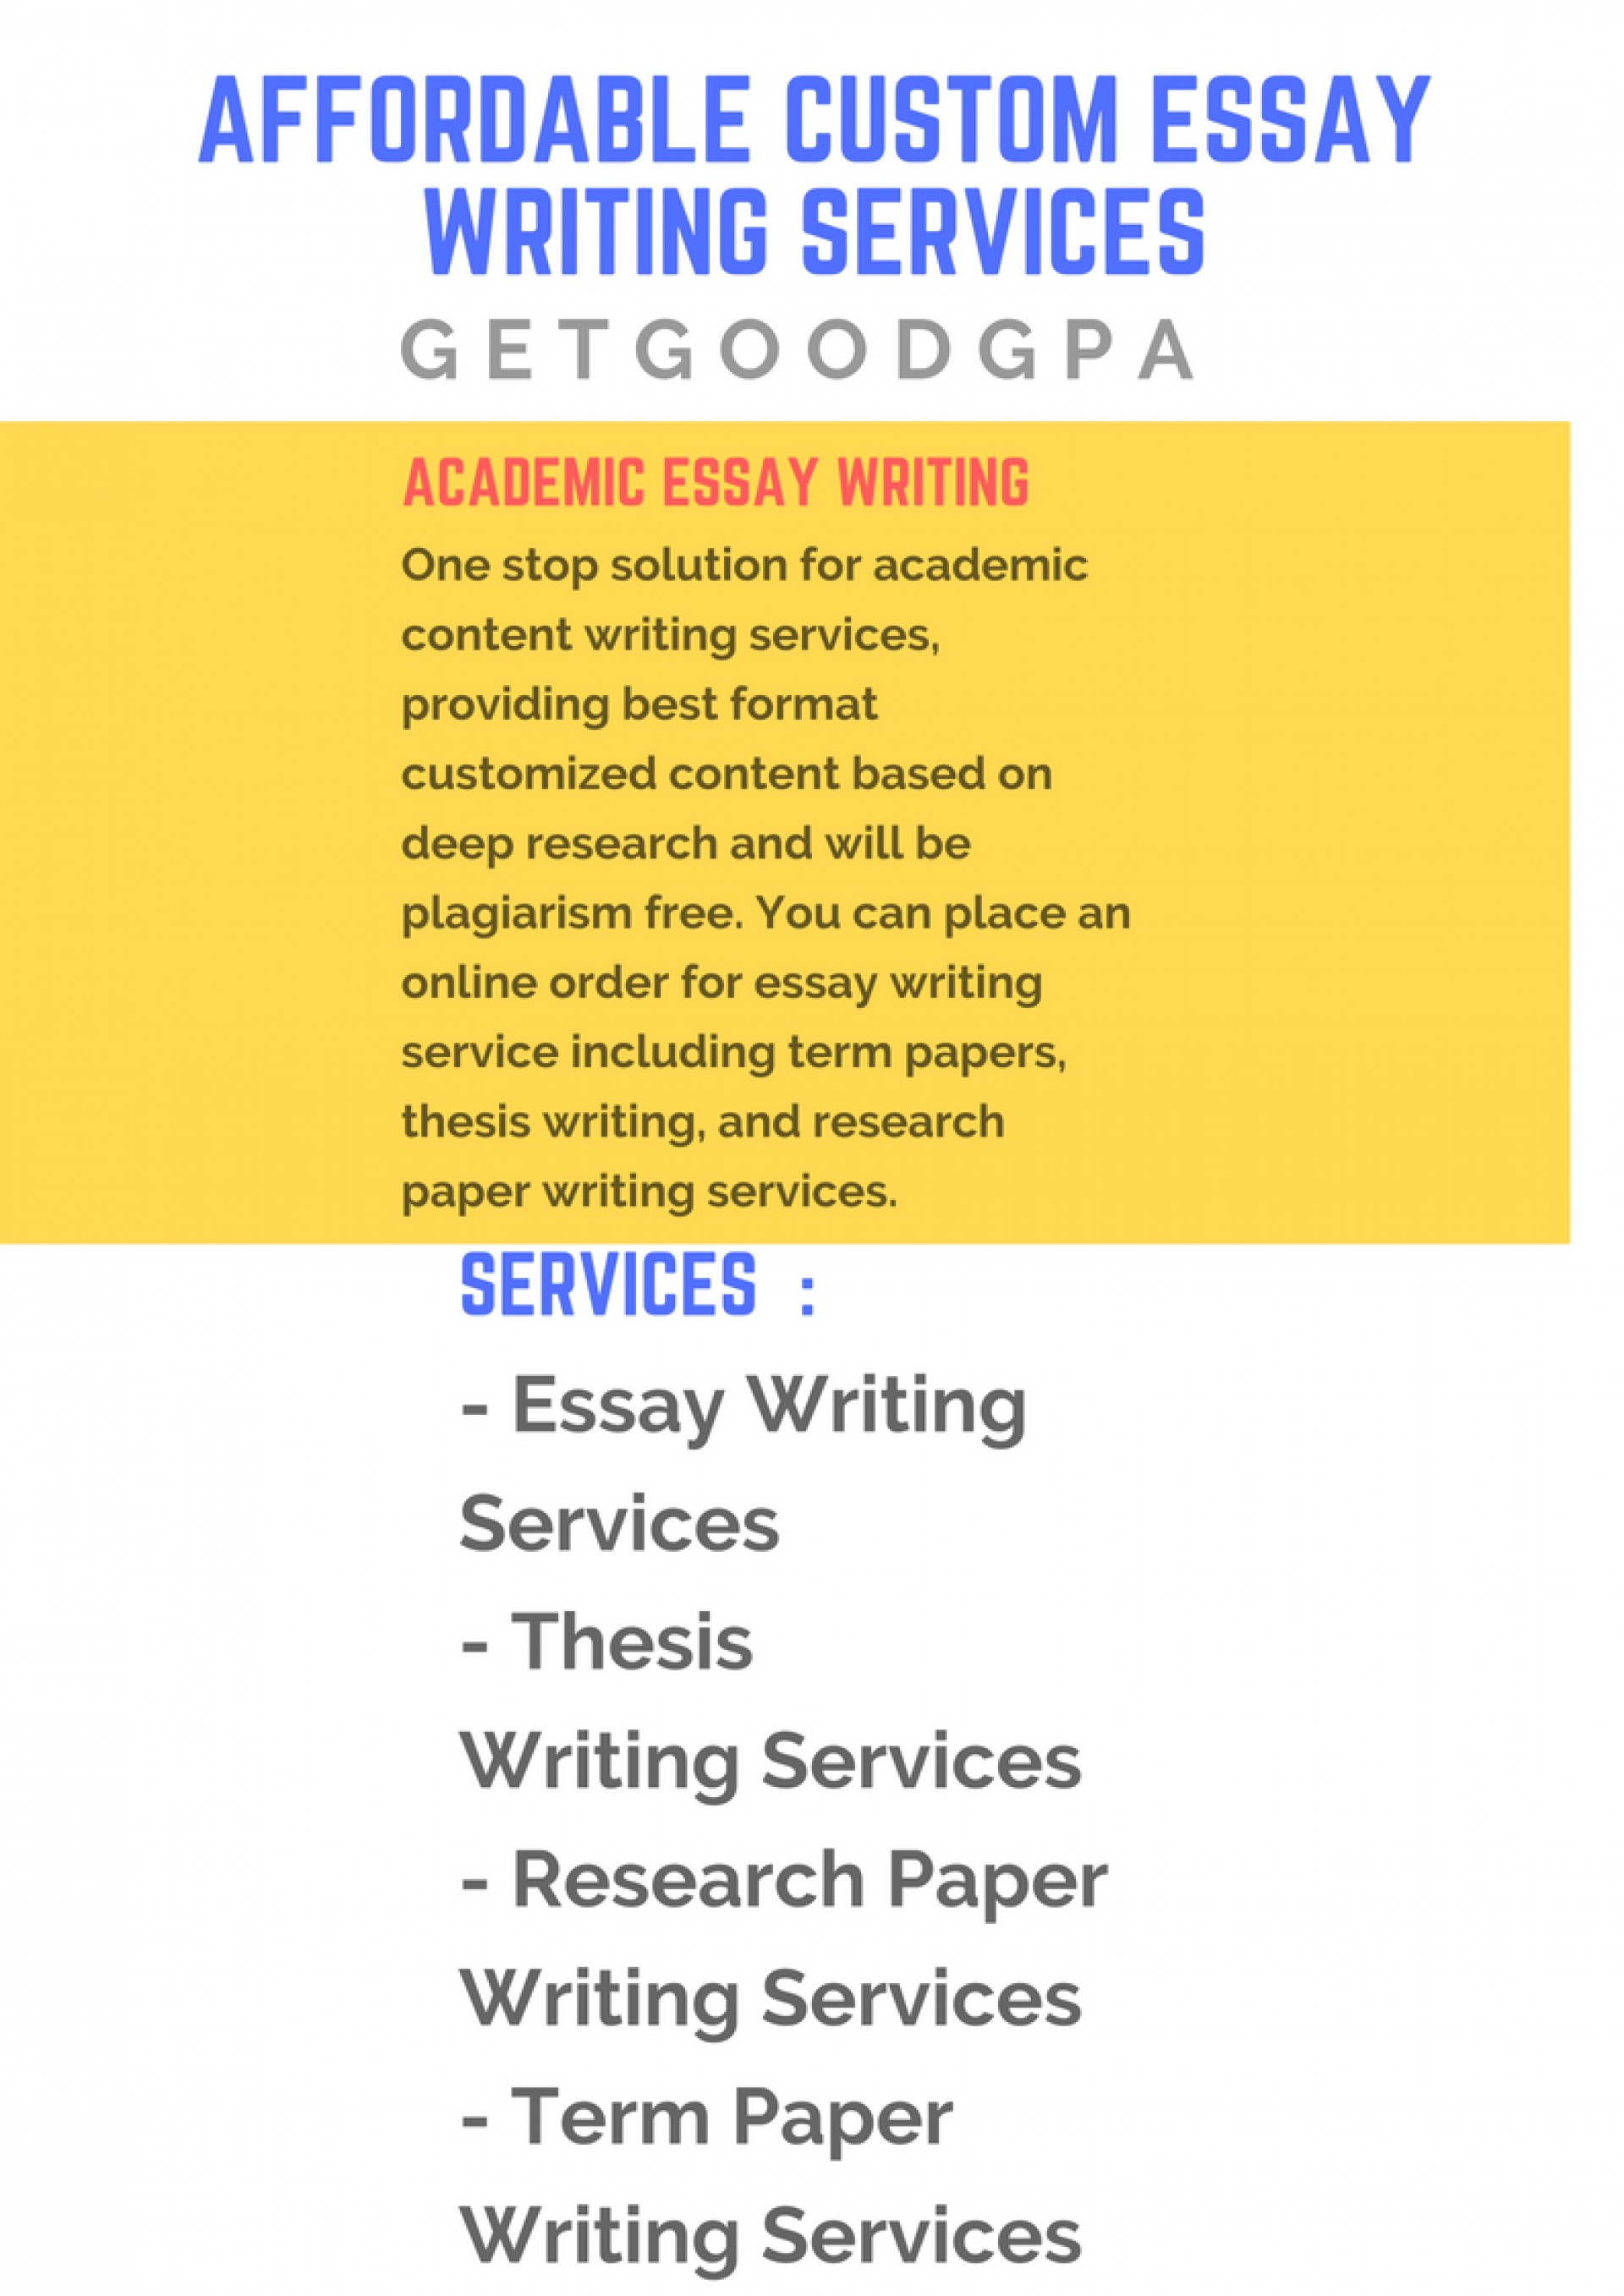 002 1p24u5izogrgxlkfzqmxvgq Research Paper Writing Dreaded Service Services In India Best Academic Online 1920